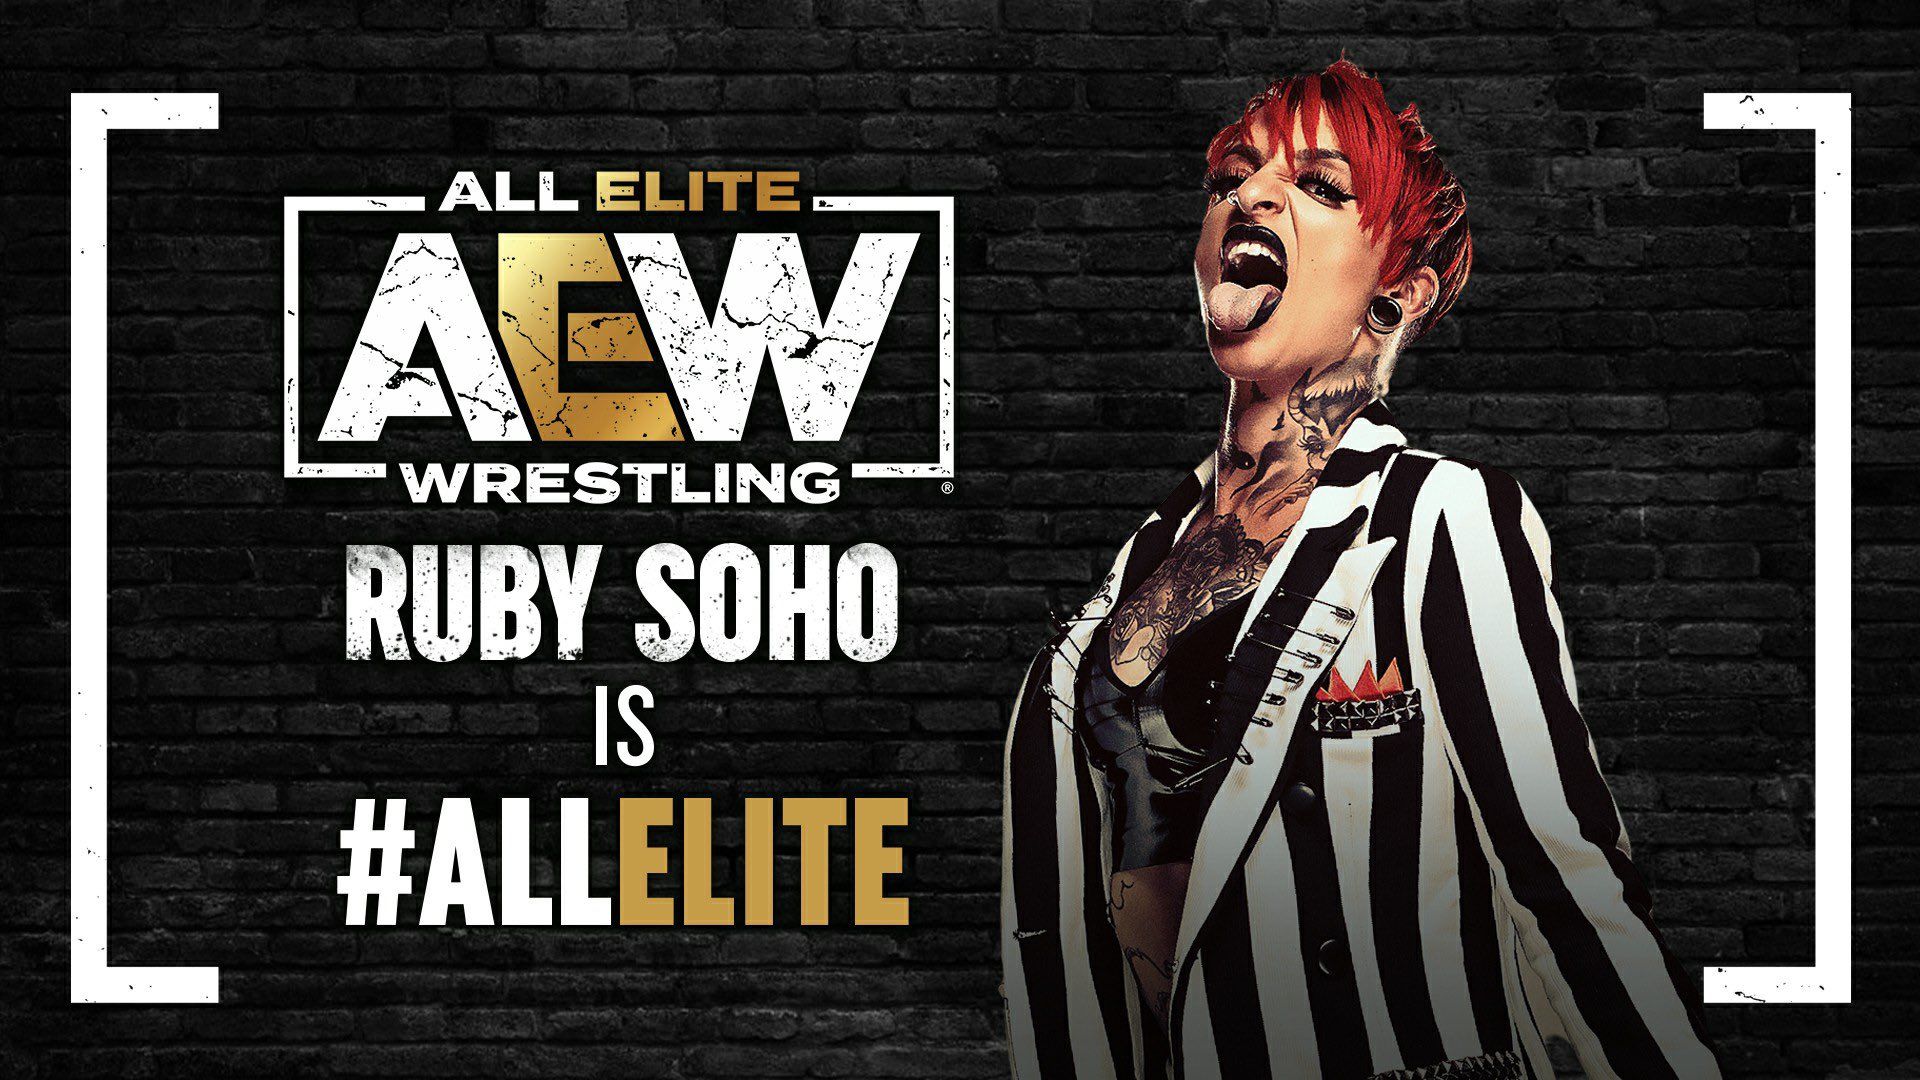 Ruby Soho signs with All Elite Wrestling